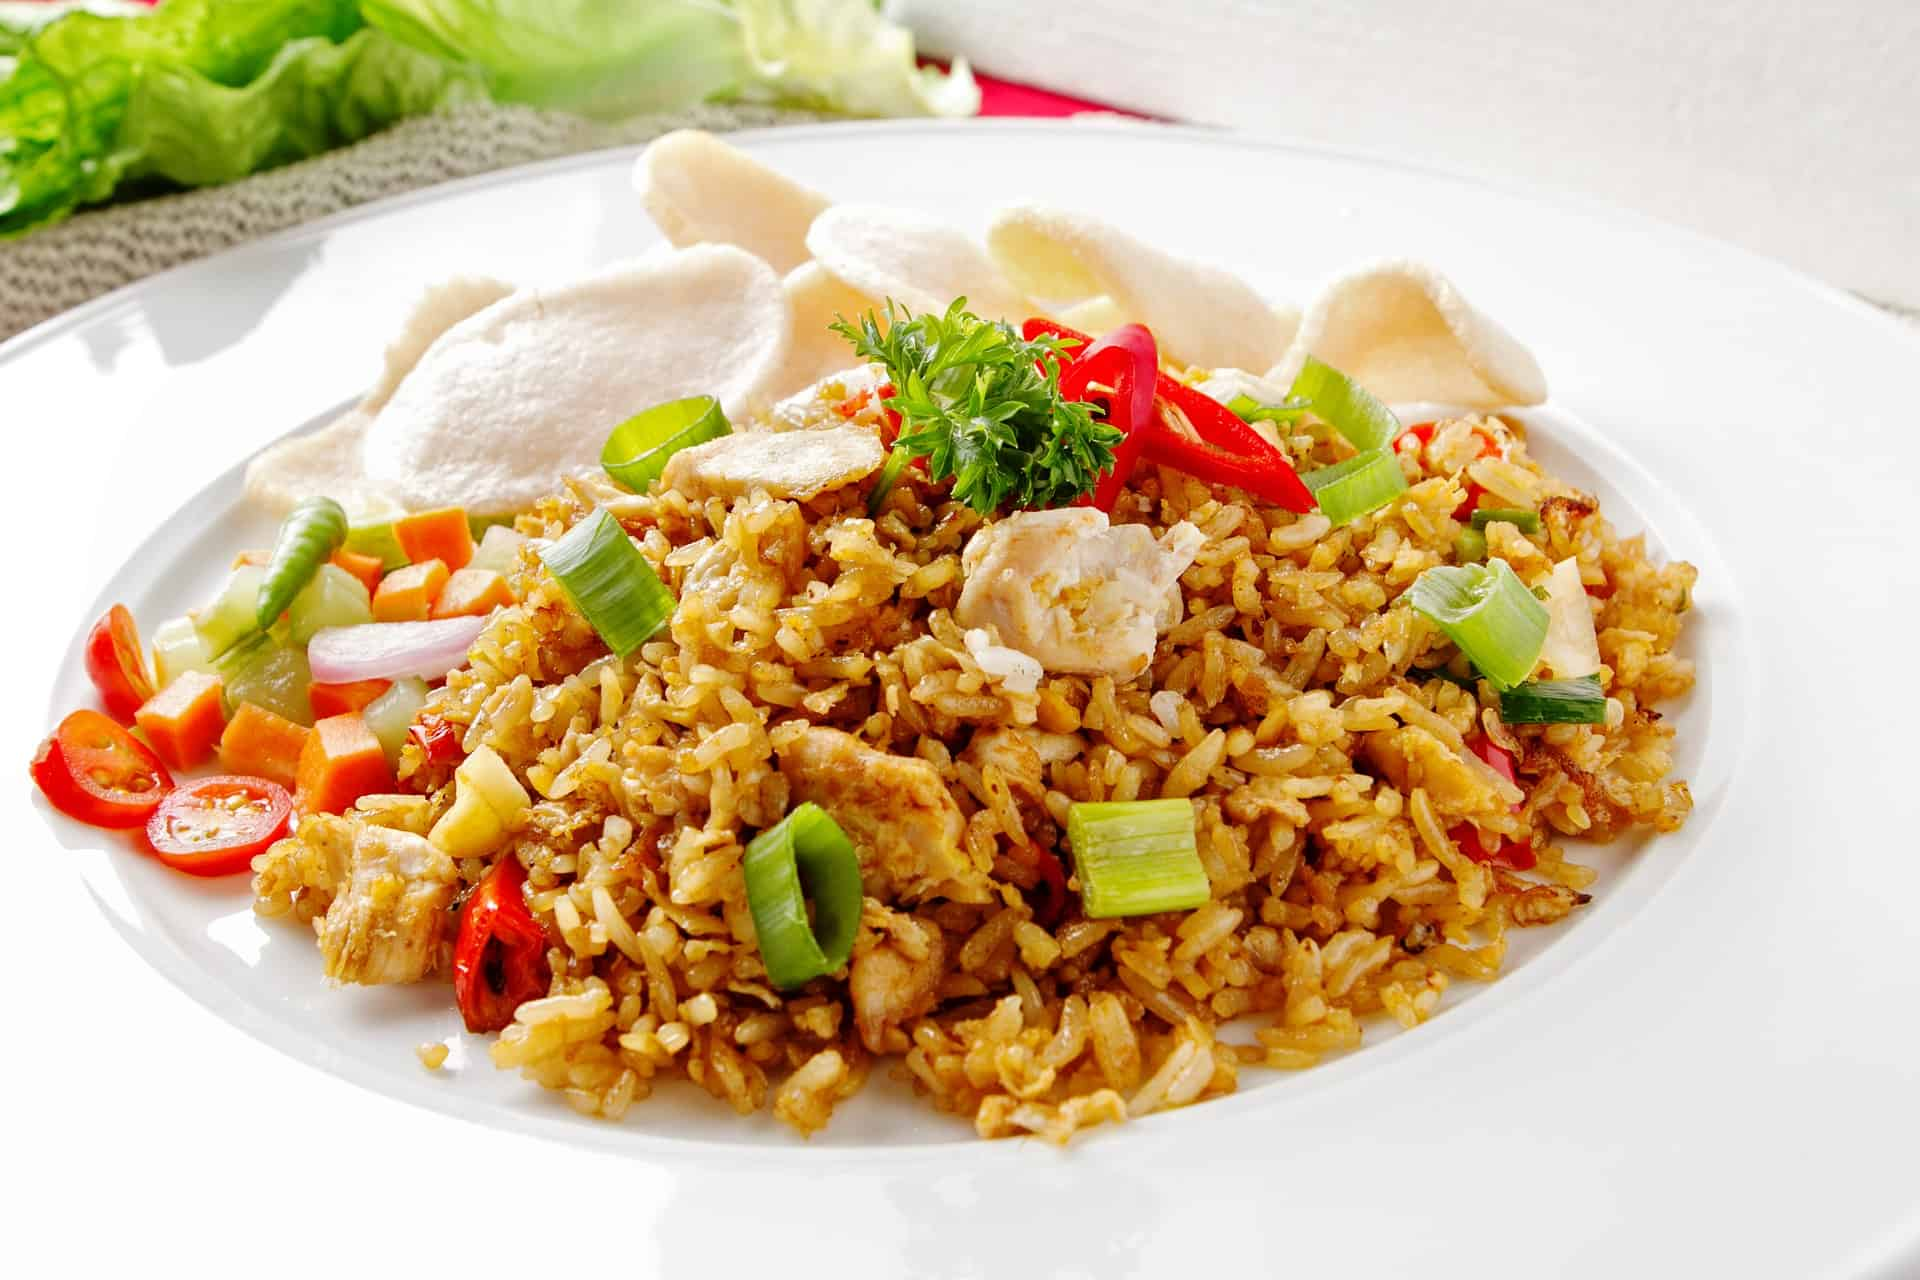 fried rice recipe for teppanyaki